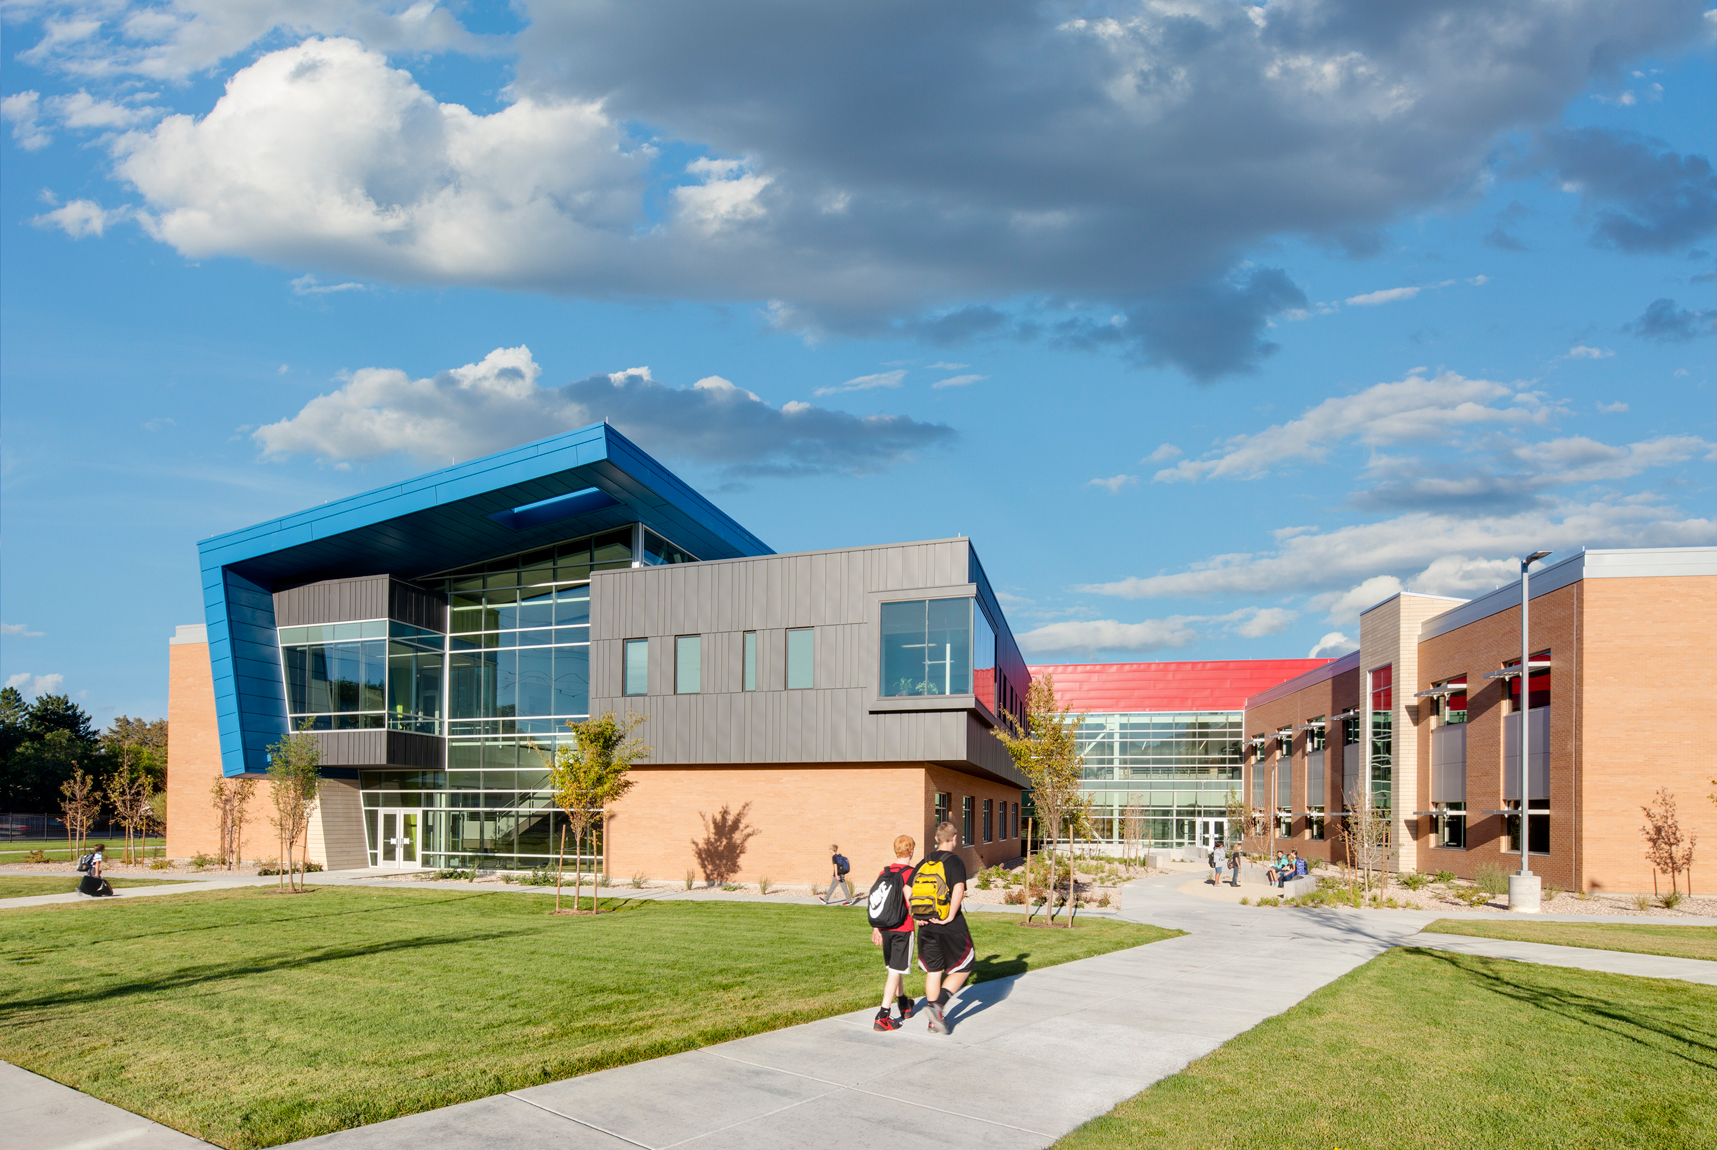 Exterior view of classroom wing with students walking to calss at sunrise at Mt. Jordan Middle School in Sandy Utah for MHTN Architects / Hogan & Associates. These wings feature metal cladding and overhangs of blue metal. Architectural Photography by Paul Richer / RICHER IMAGES